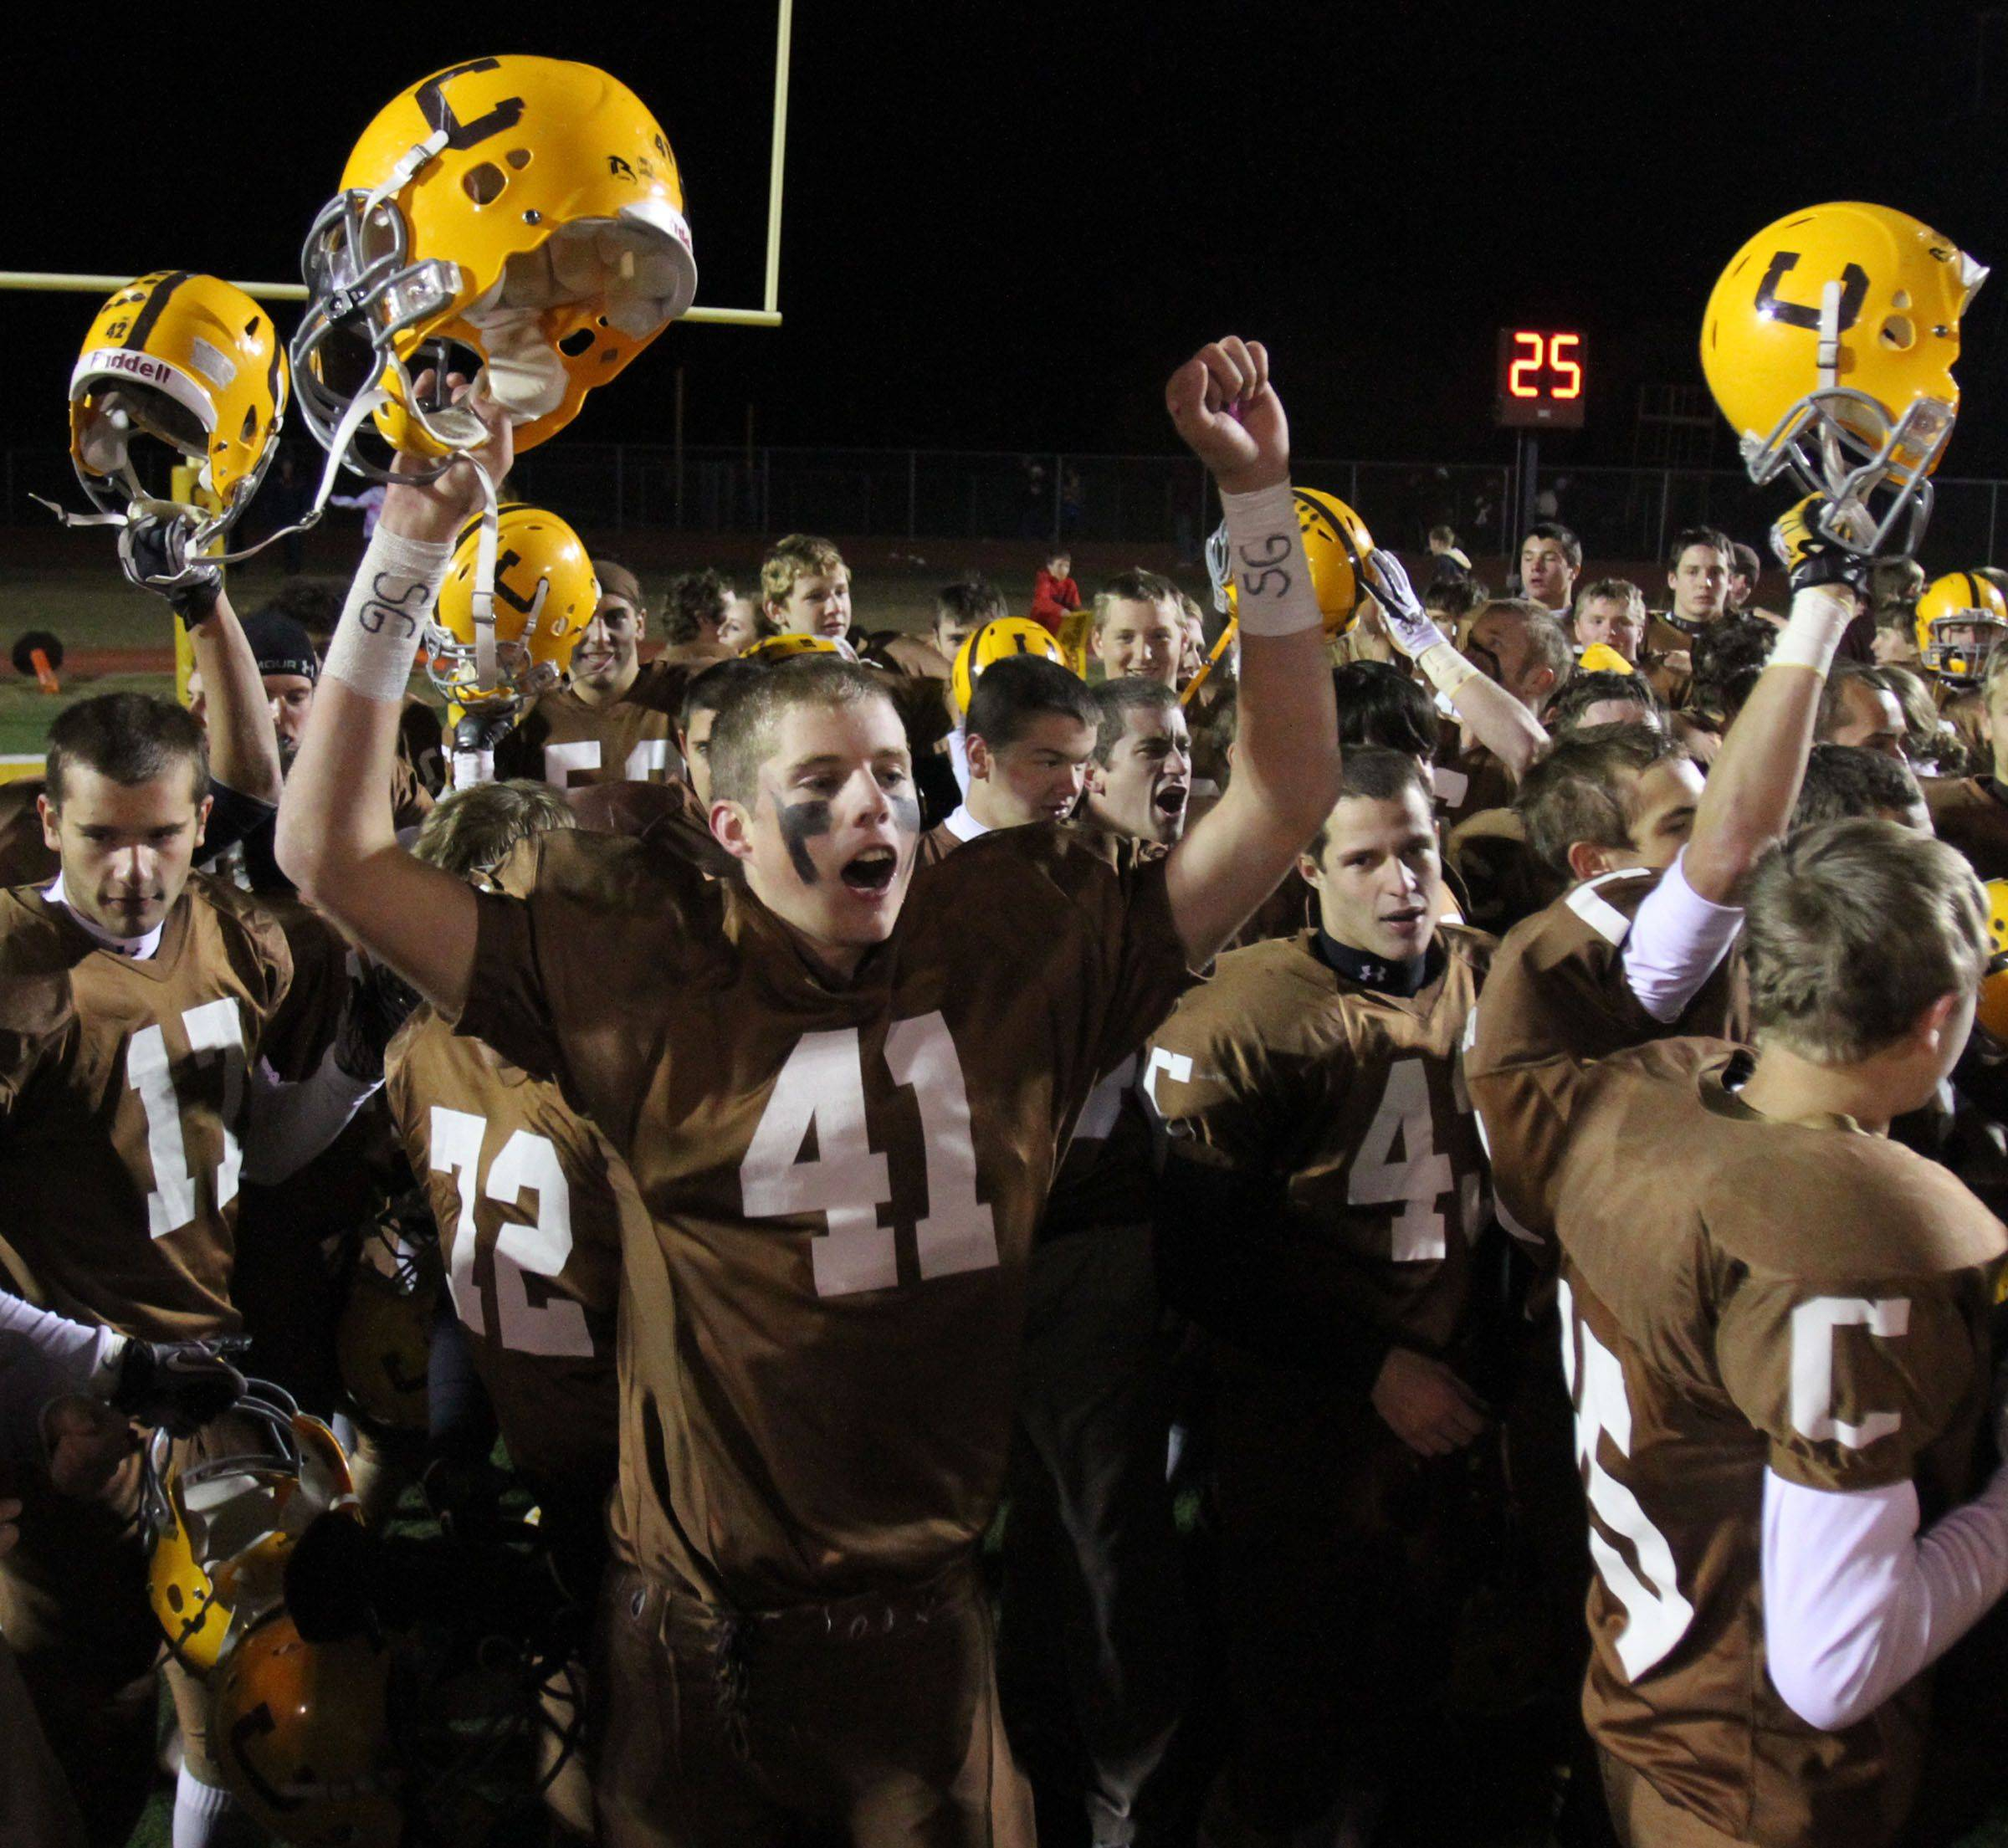 Carmel's Michael Fitzgibbons and teammates celebrates winning 55-7 over Elgin in round one of Class 7A state playoffs at Carmel in Mundelein on Friday, October 29.